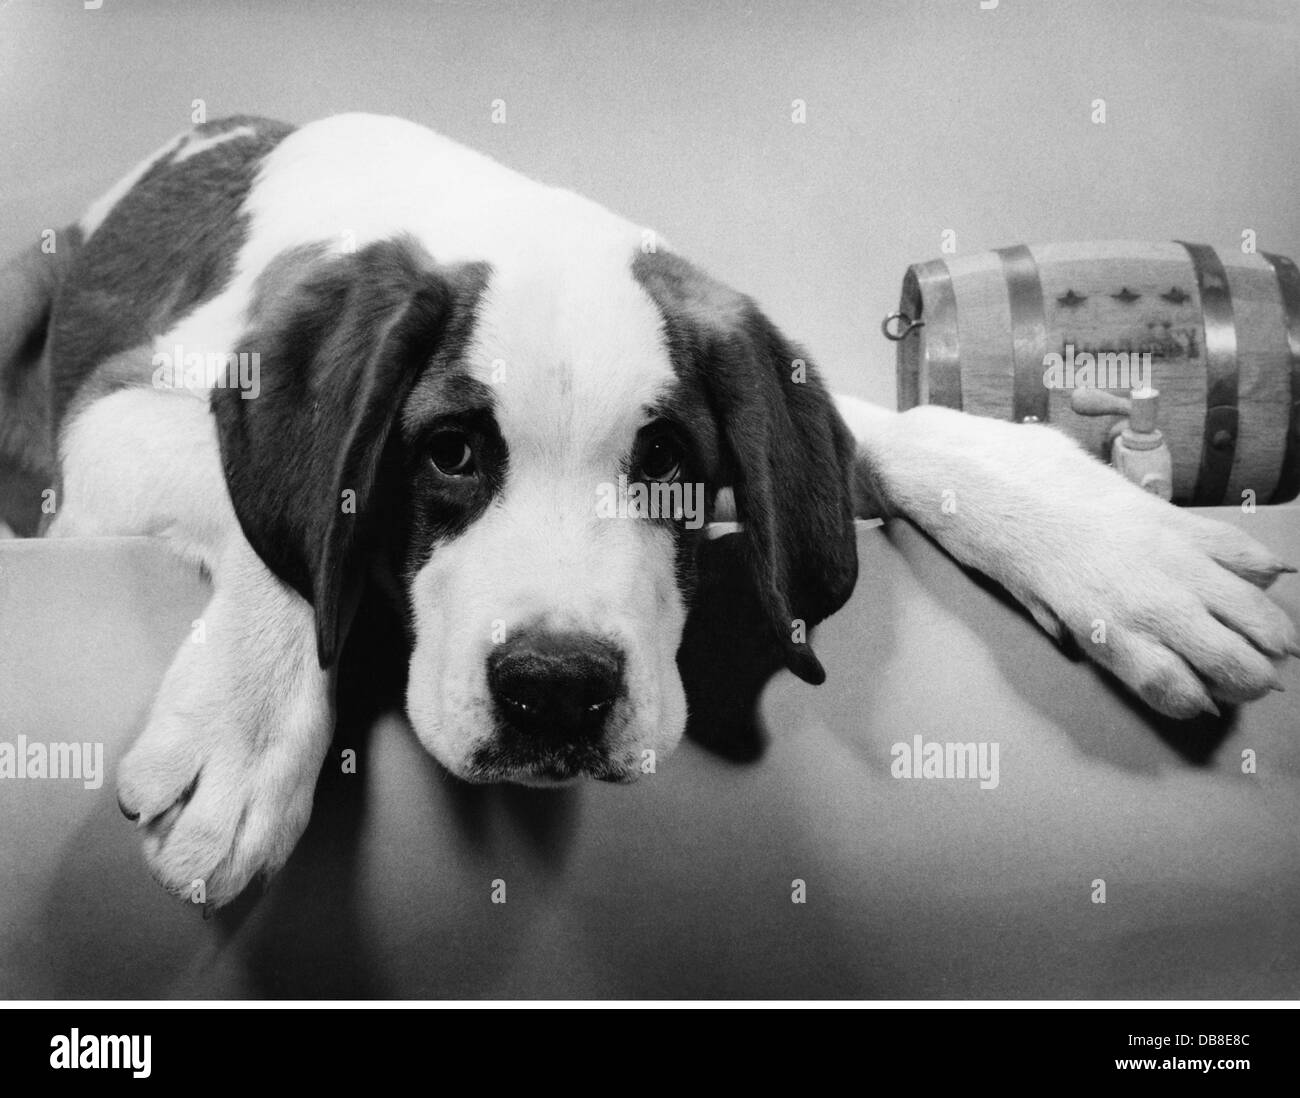 zoology / animals, mammal / mammalian, dog (Canis lupus familiaris), 1950s, Additional-Rights-Clearences-NA - Stock Image